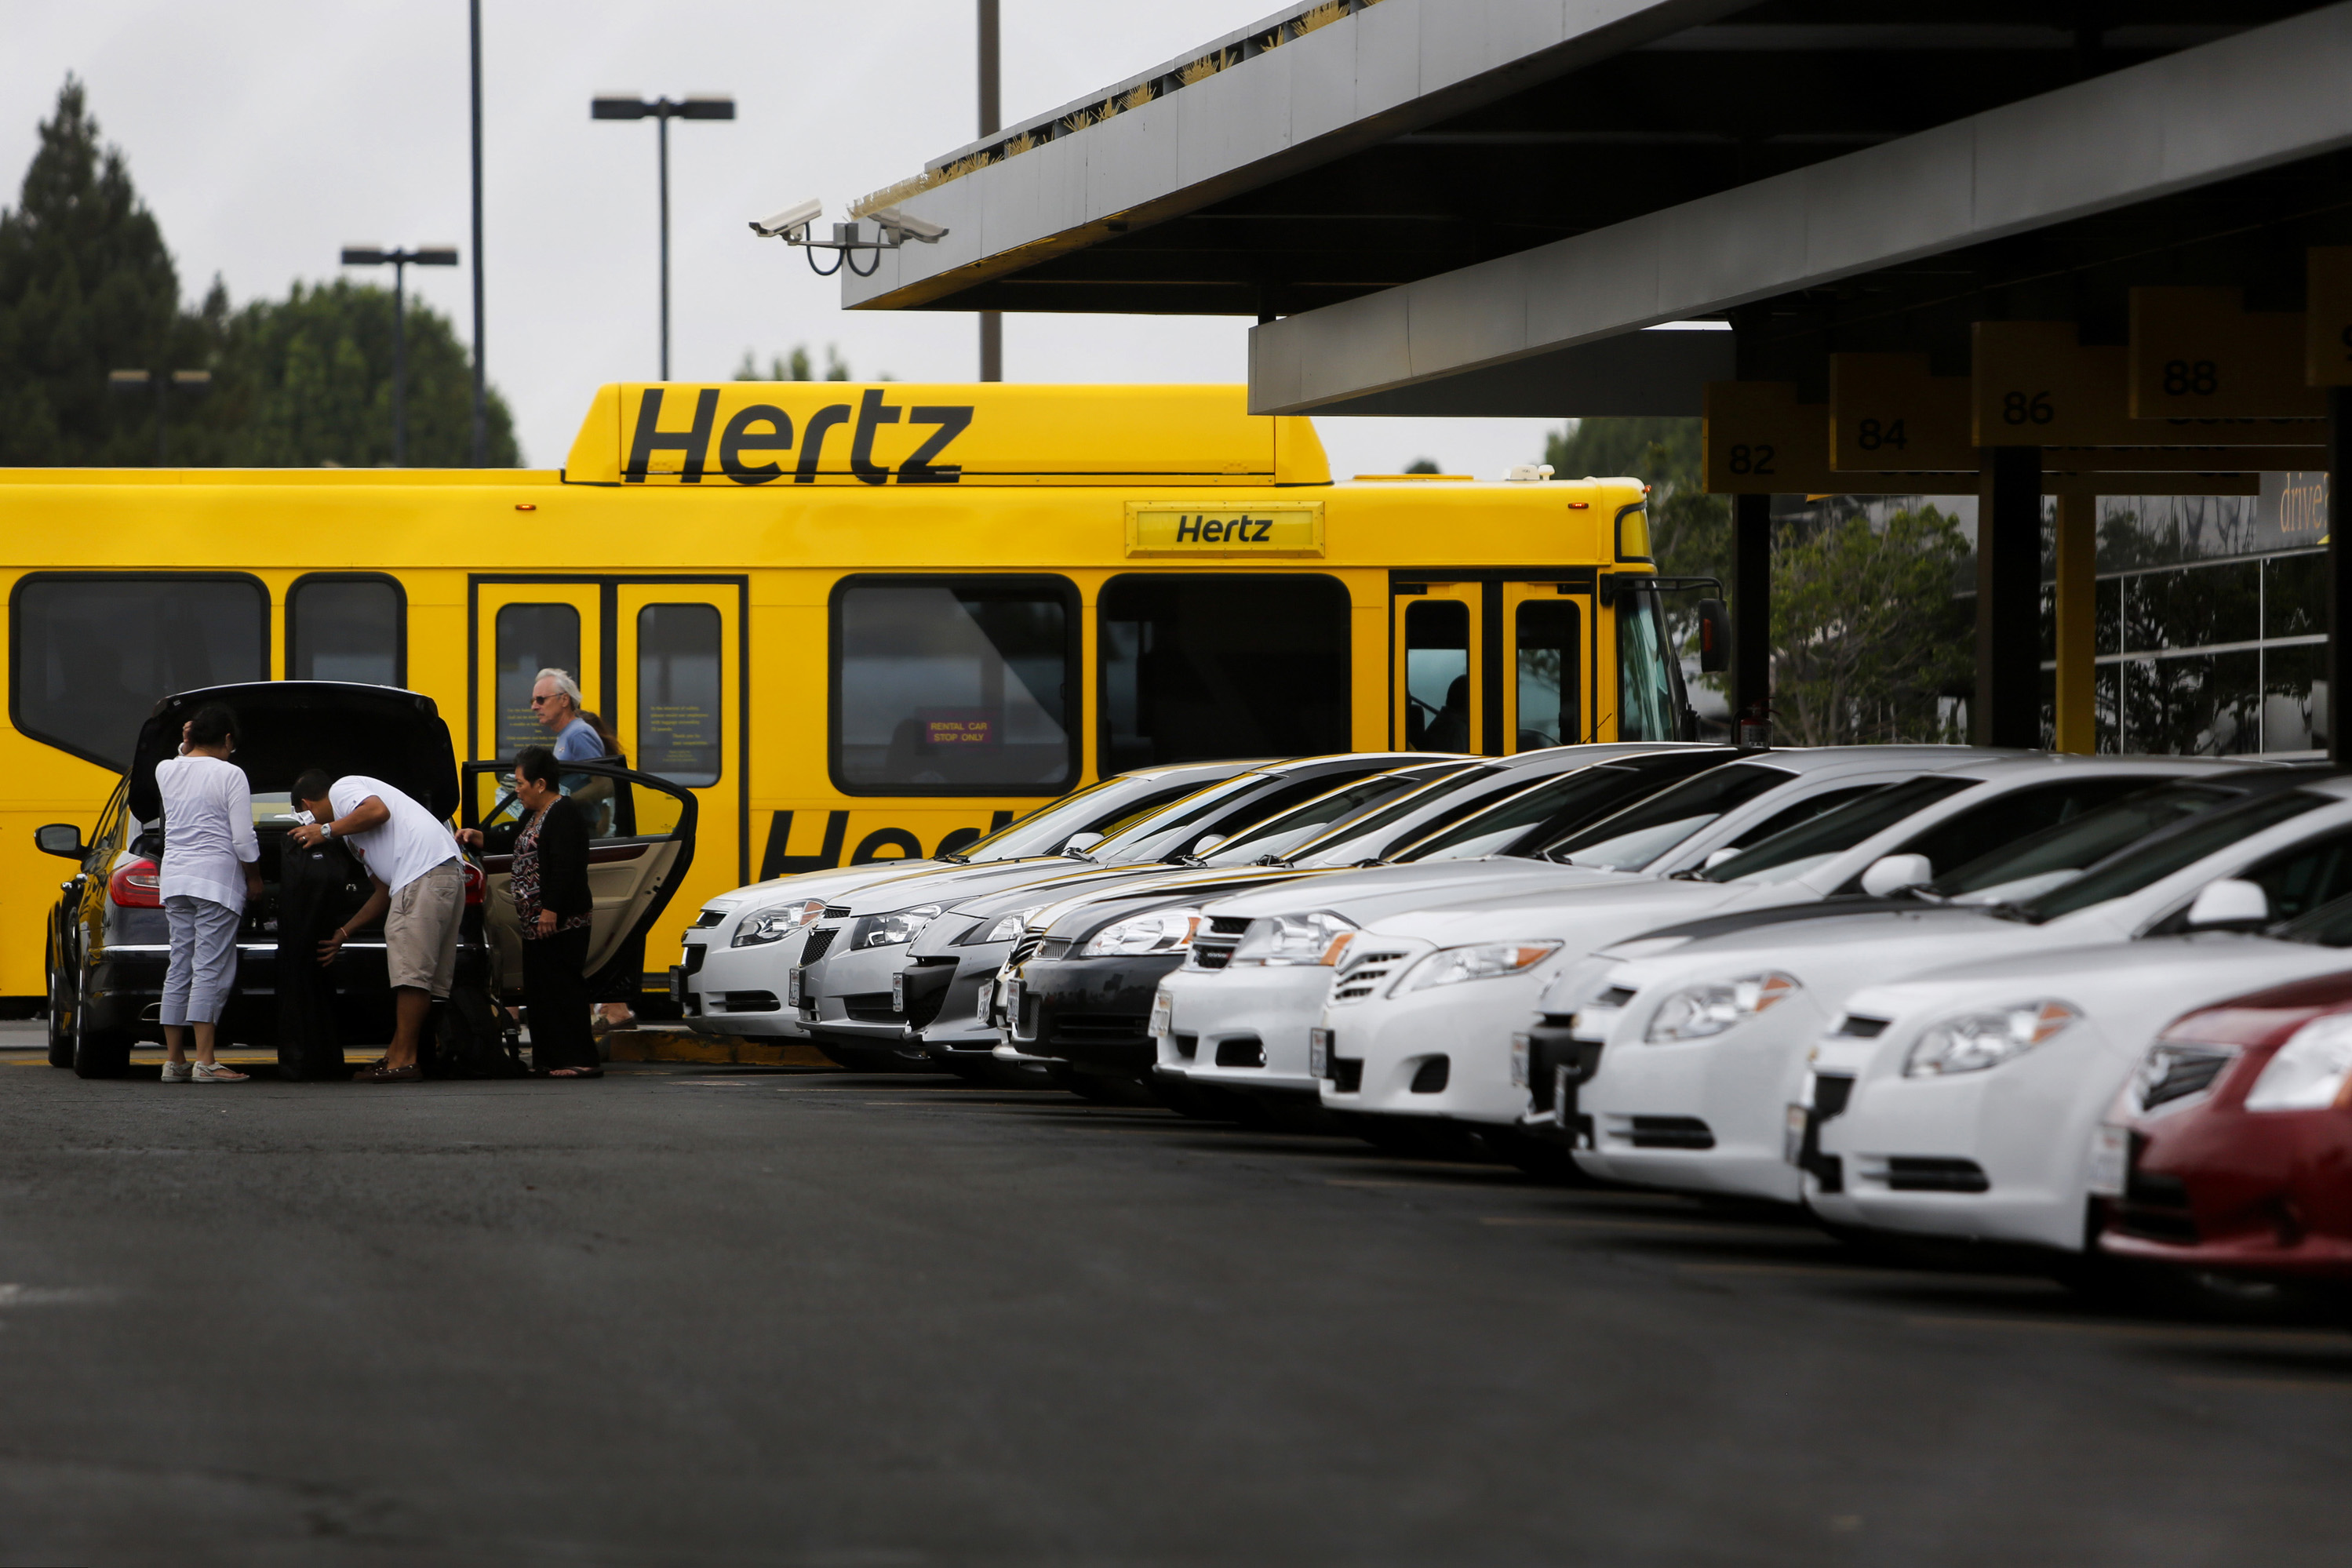 Hertz Will Spin Off Equipment Rental Unit To Focus On Cars